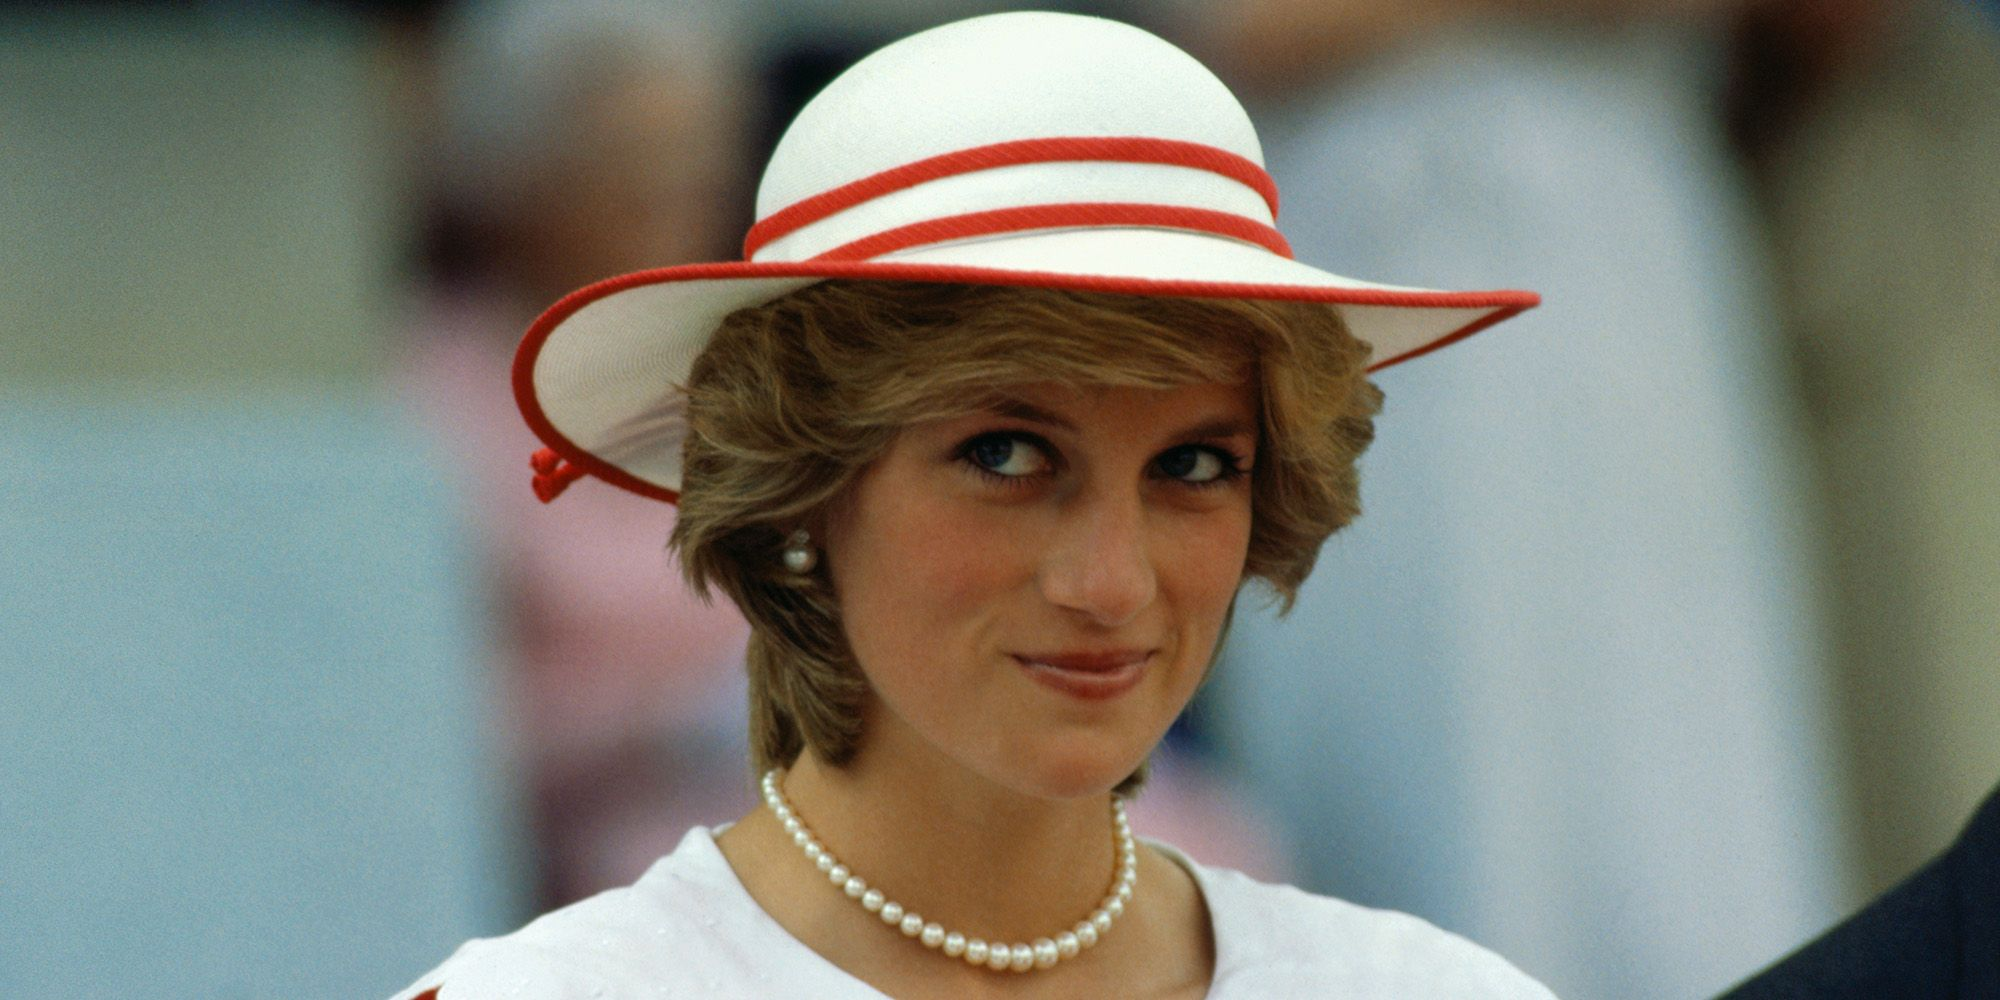 There's a Princess Diana Broadway musica on the way